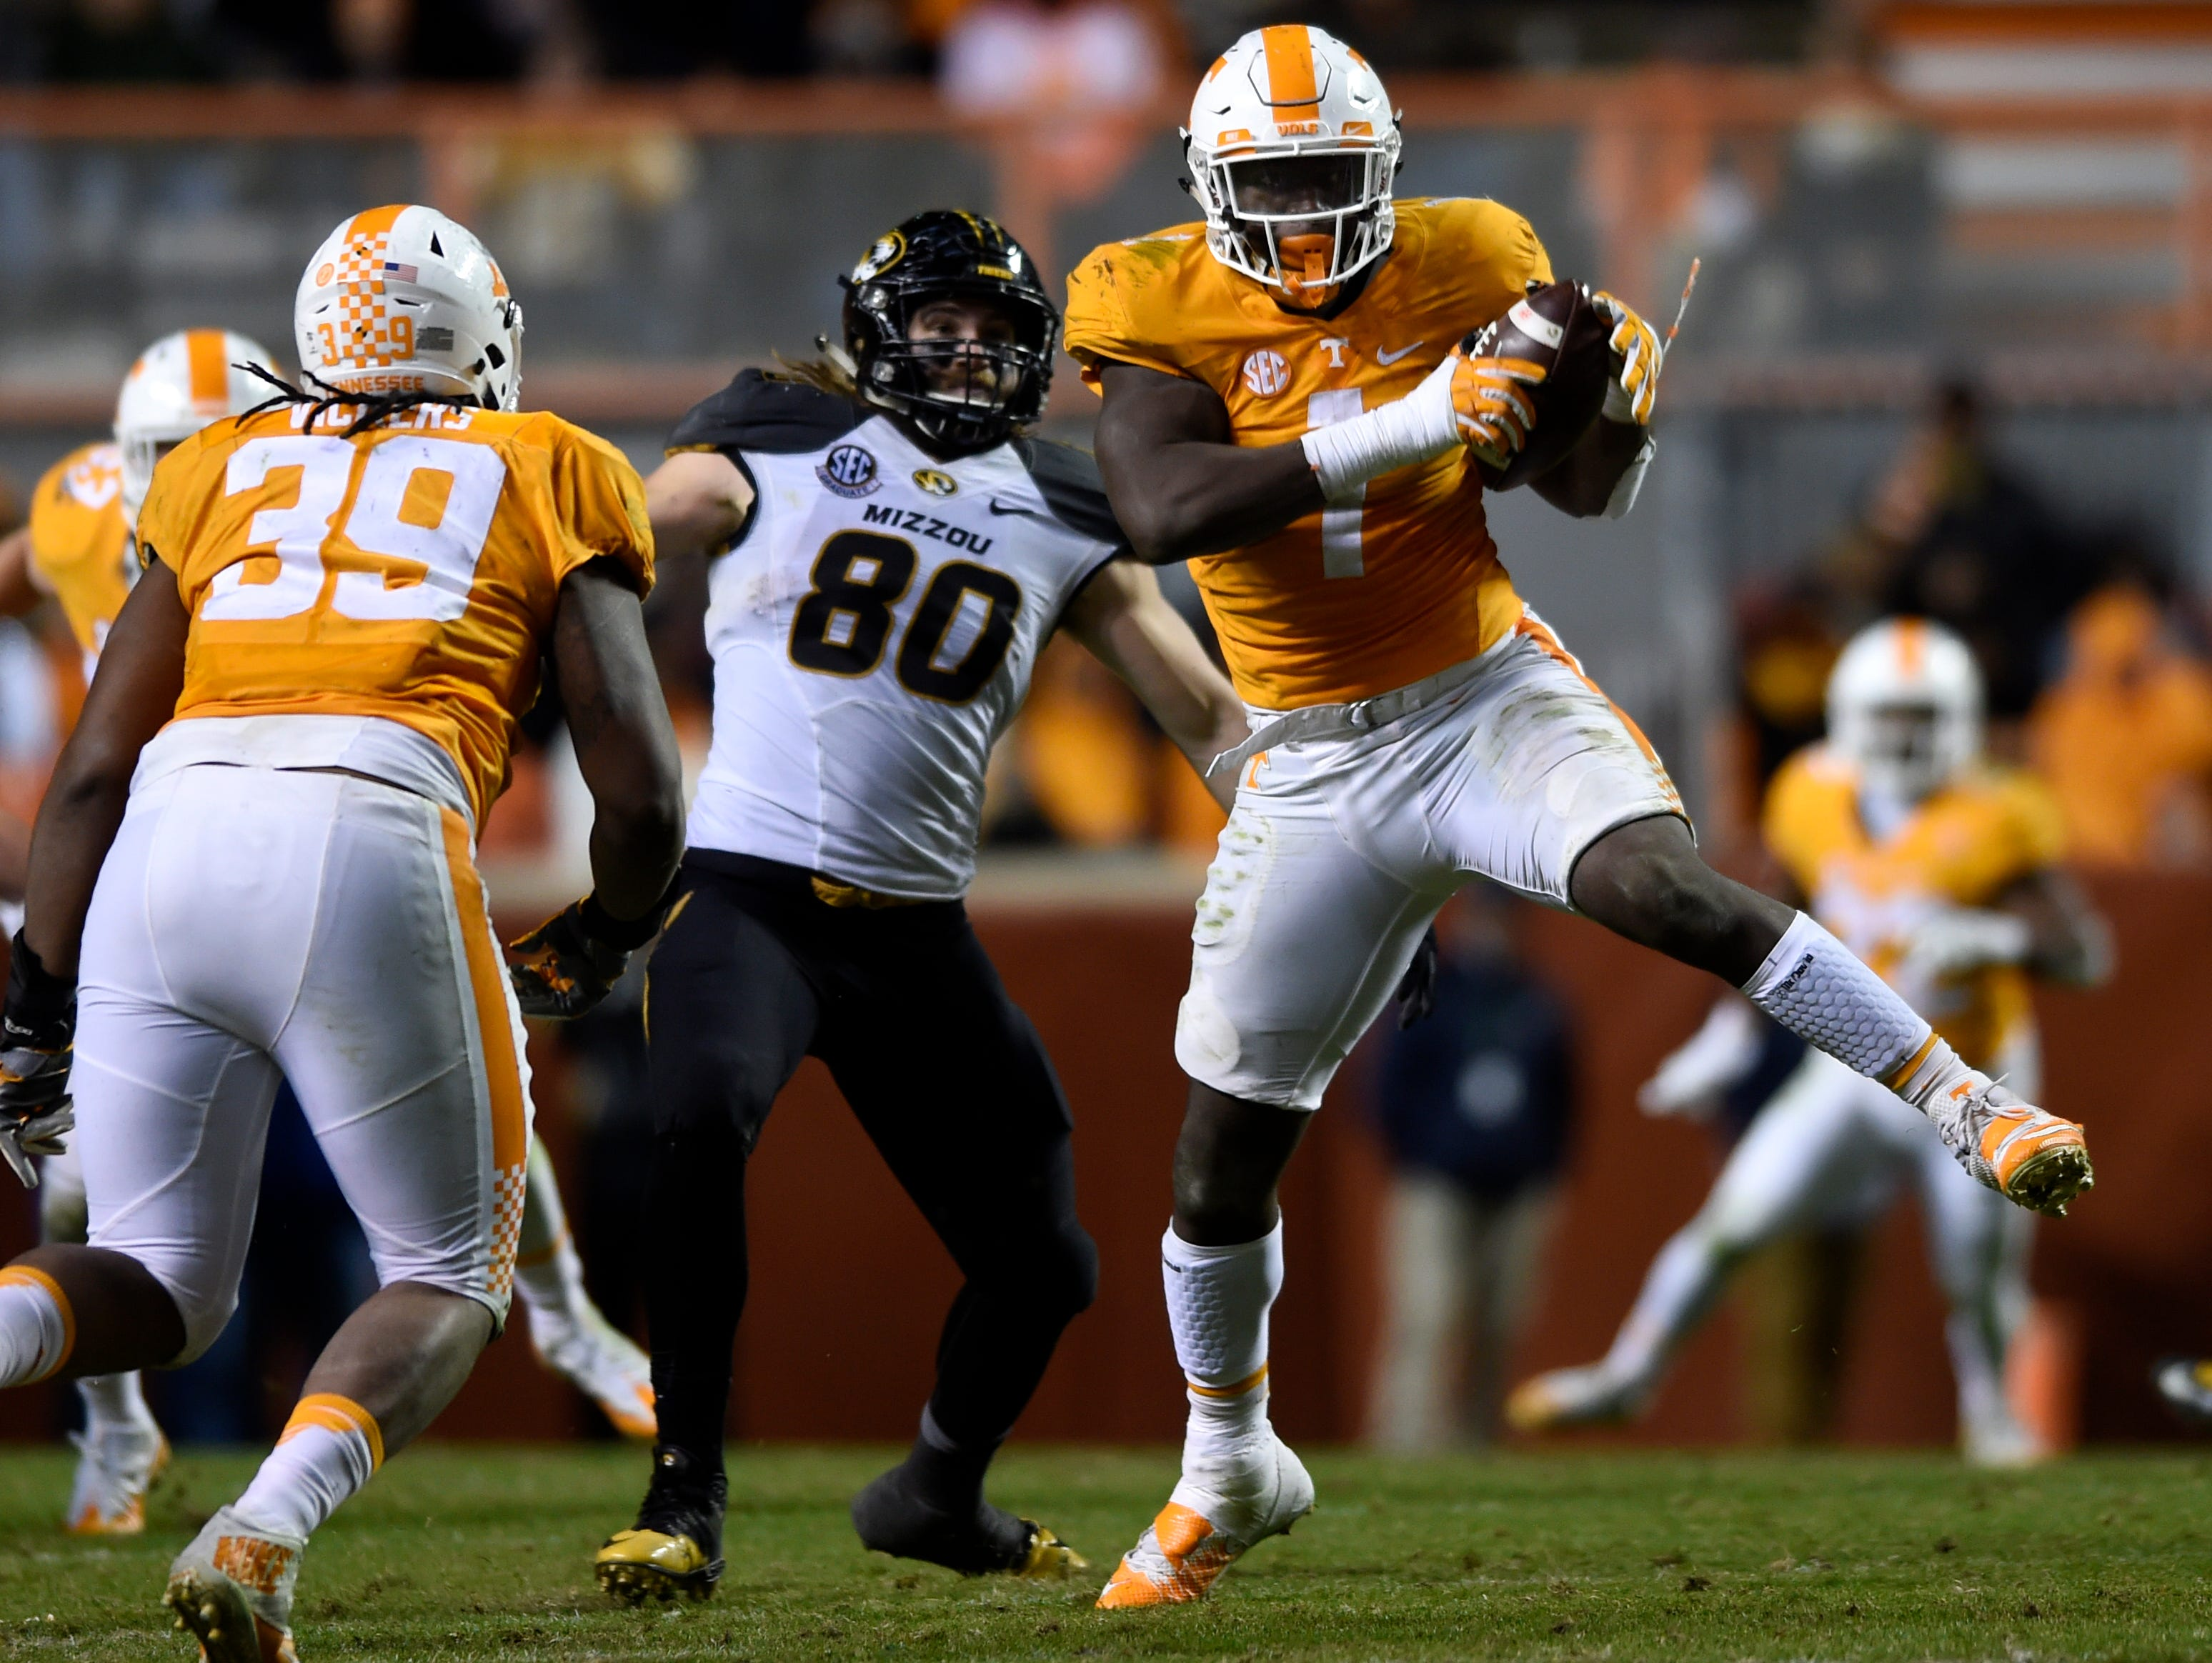 Tennessee defensive lineman Jonathan Kongbo (1) intercepts a pass and returns it for a touchdown against Missouri on Nov. 19, 2016.